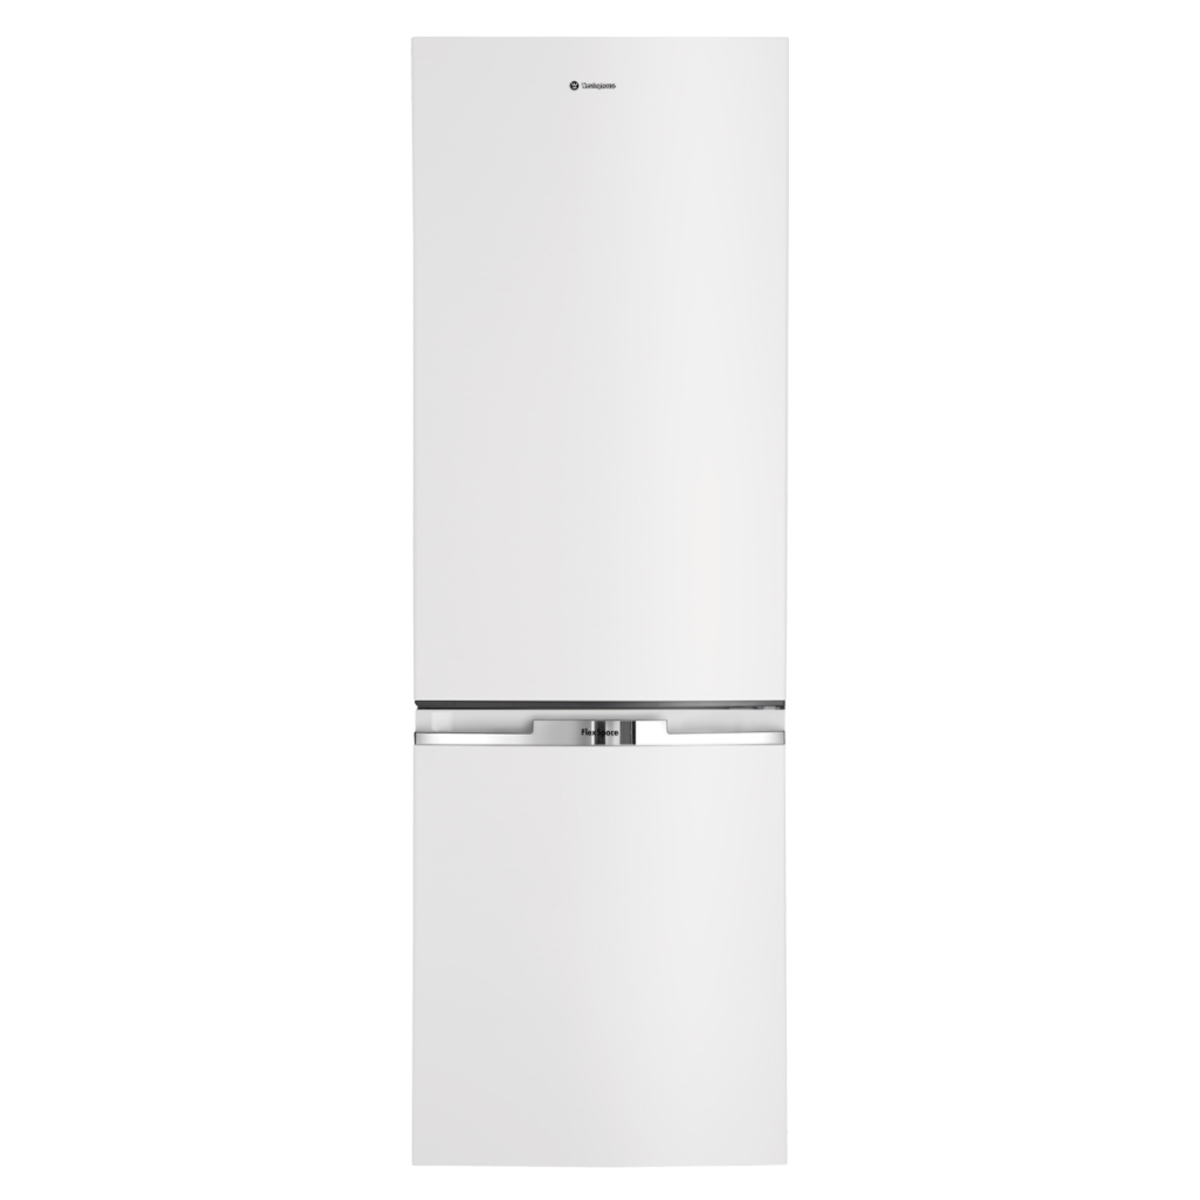 Westinghouse WBB3700WG 370L Bottom Mount Fridge